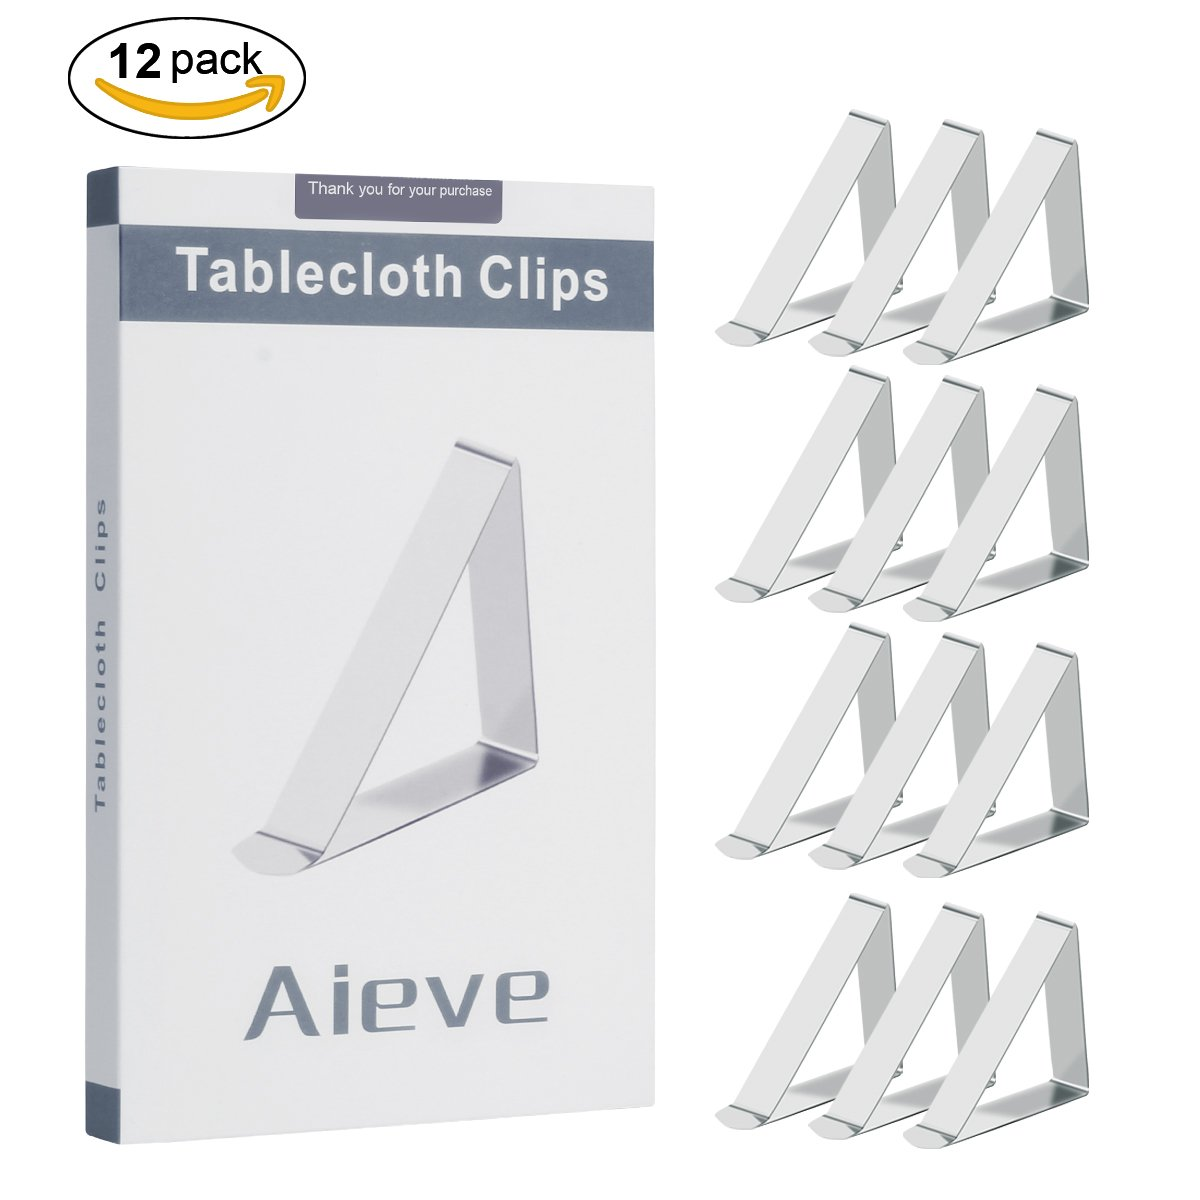 AIEVE Tablecloth Clips,12 Pack Stainless Steel Picnic Table Clips Table Cover Clamps Table Cloth Holders for Picnic Tables Outdoor Wedding Restaurant,Silver